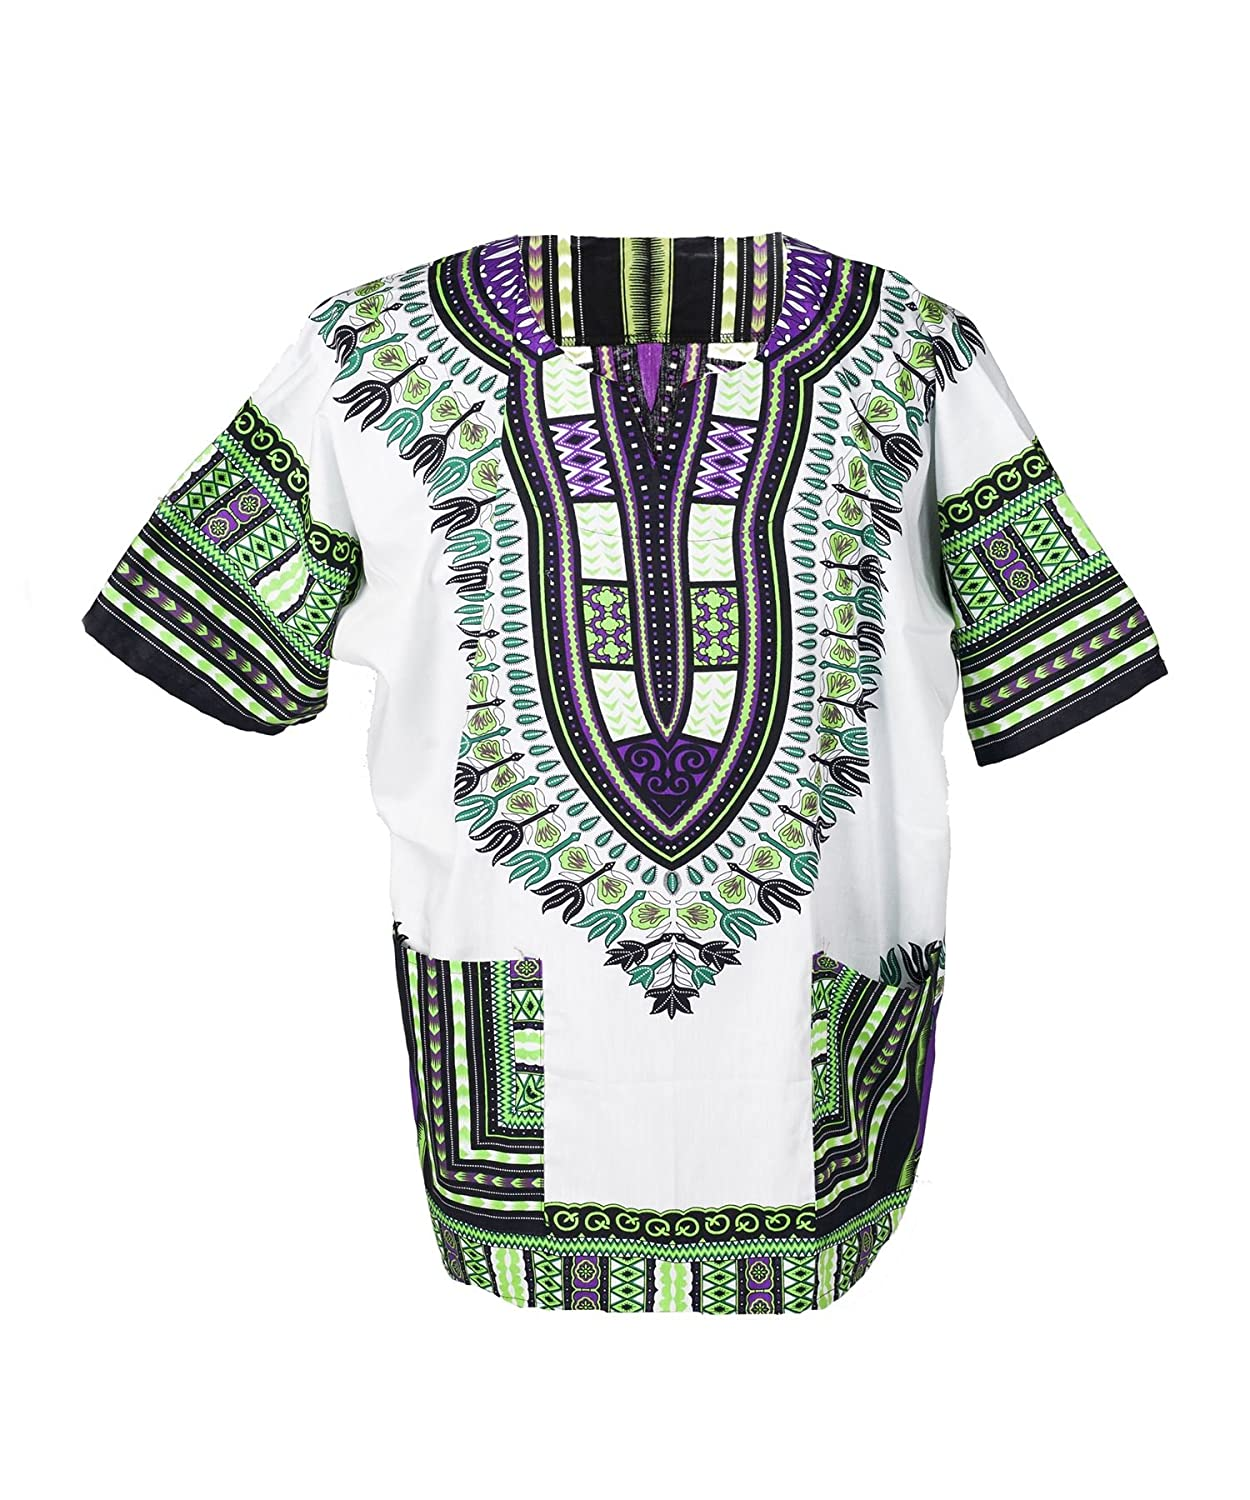 Lofbaz Traditional African Unisex Dashiki Shirt color Tribal Festival Hippie